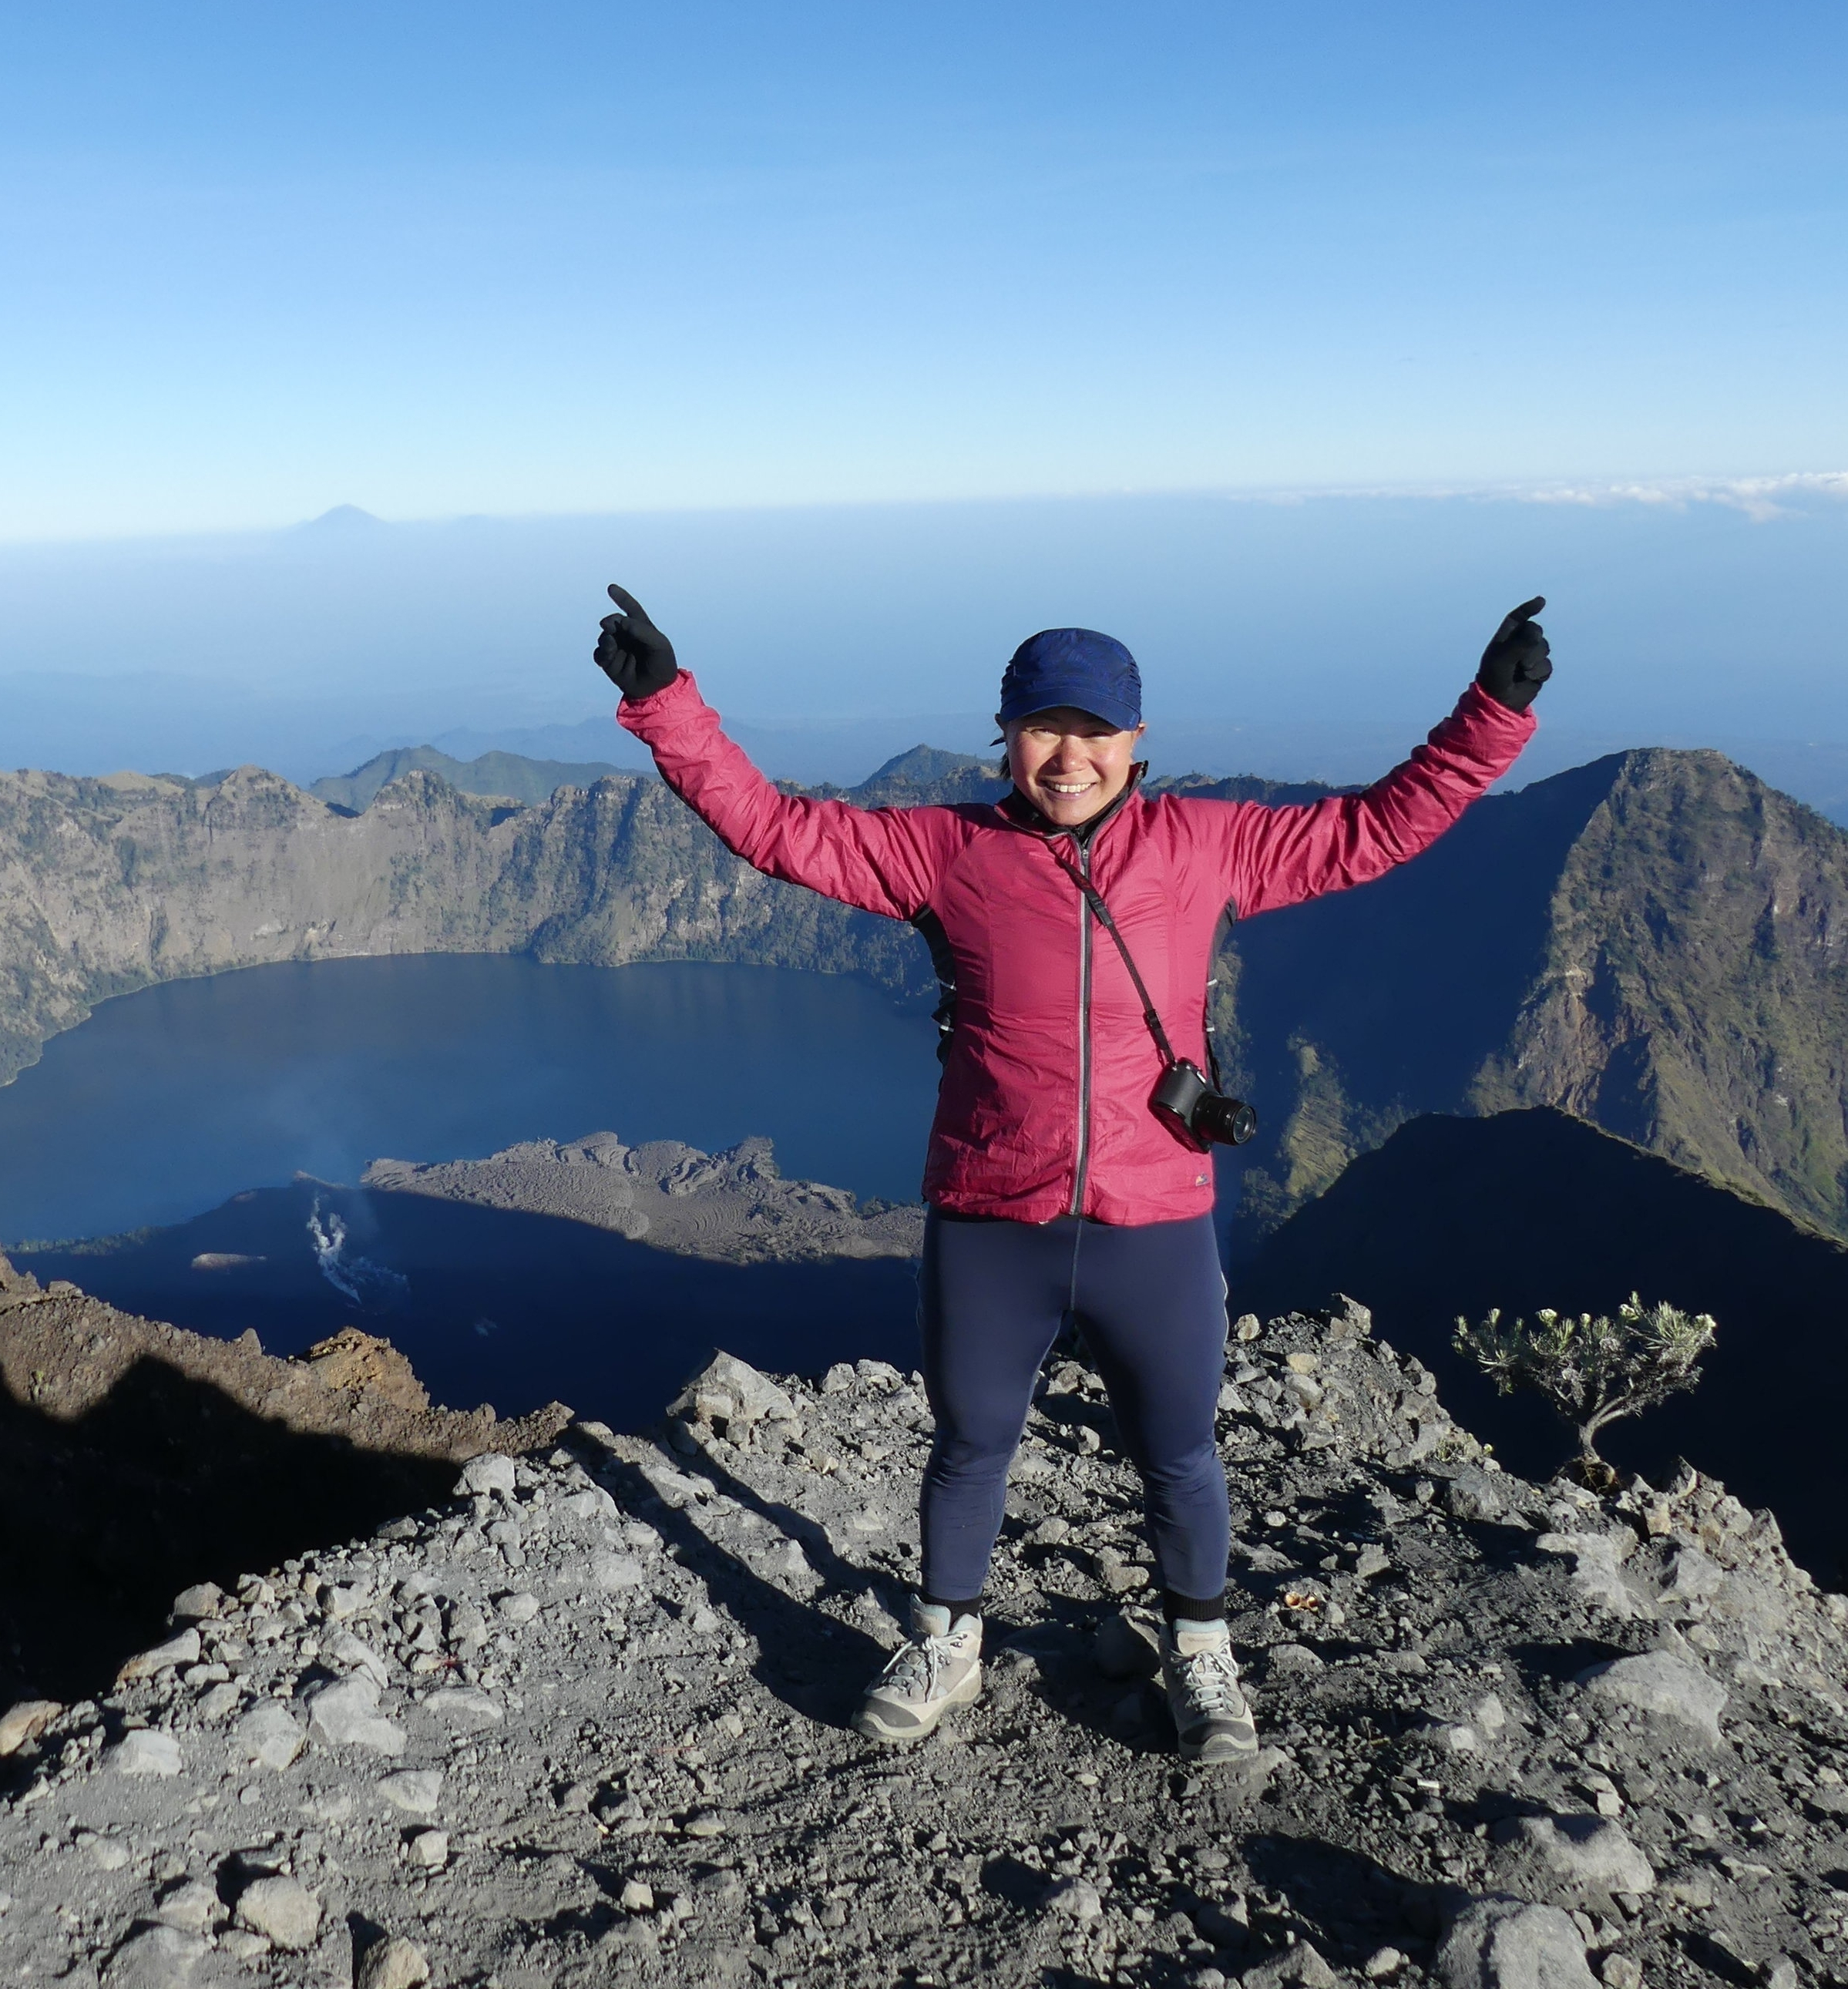 Mount Rinjani, Indonesia 2016 - Physically and mentally challenging